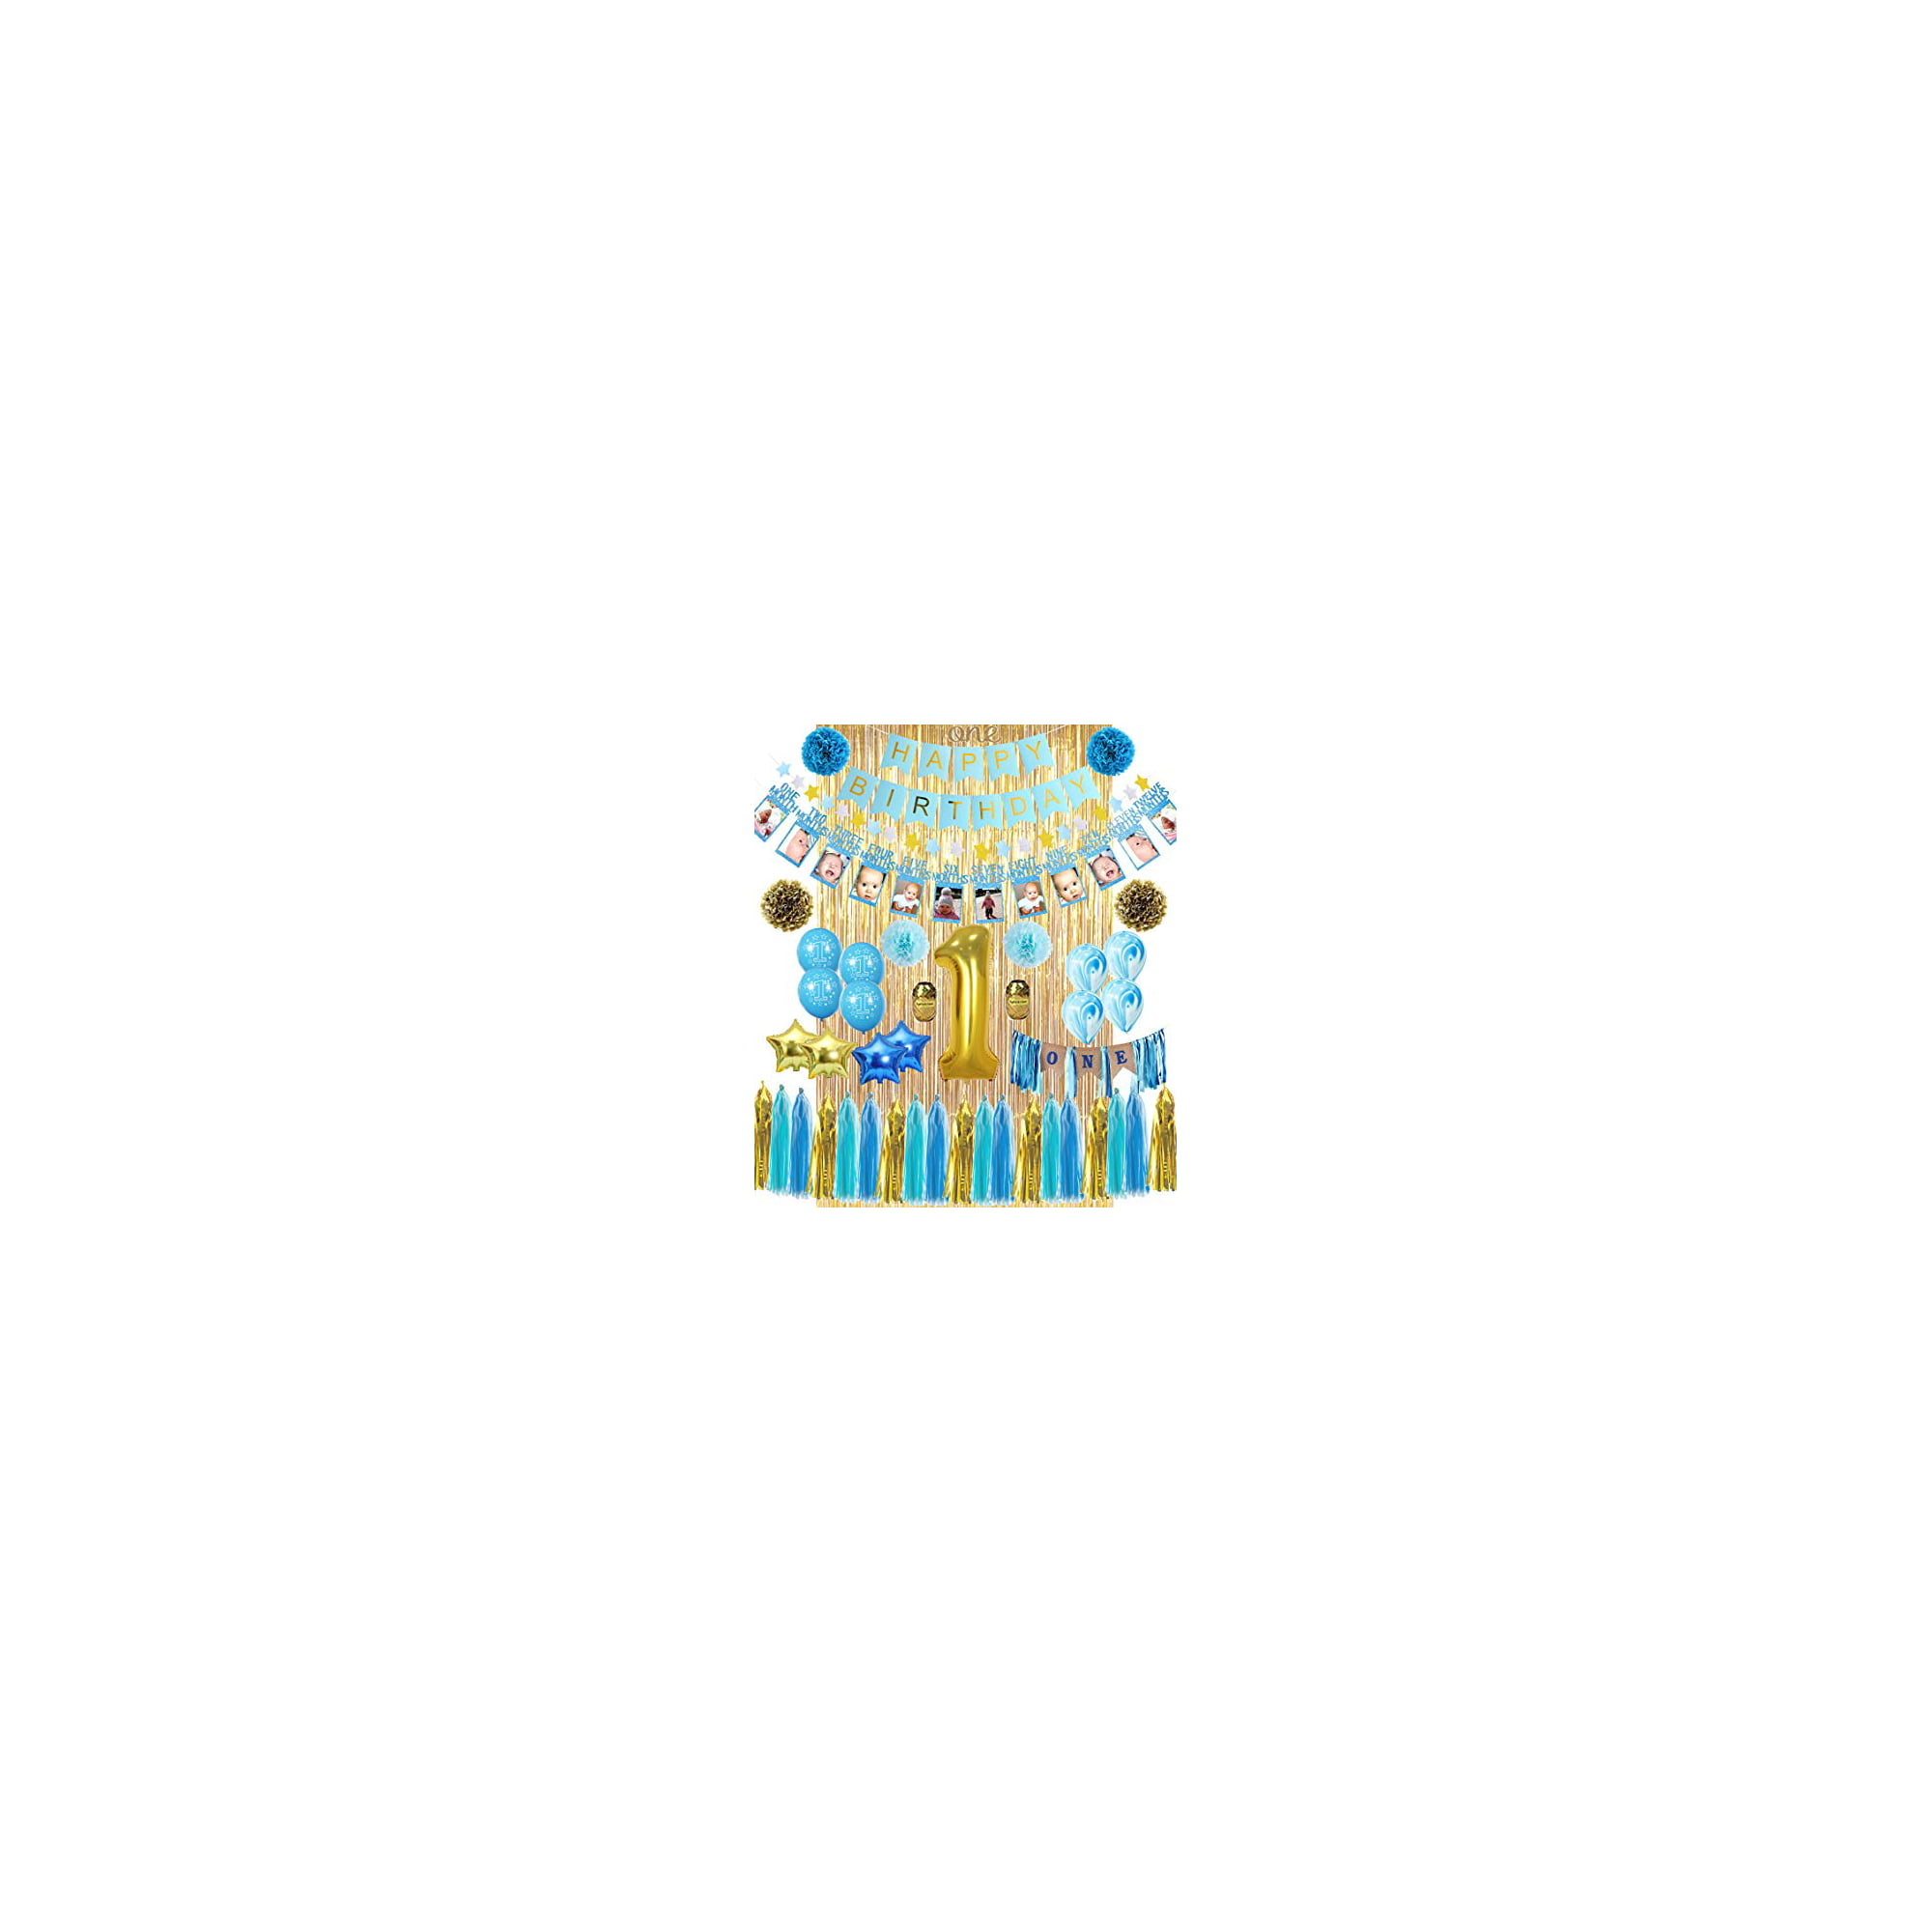 100st Birthday Boy Decorations  ALL-IN-100 MEGA Bundle!  With High Chair  Banner for Baby  Discount Direct Kids Party Decorations - Blue & Gold Boys  Set